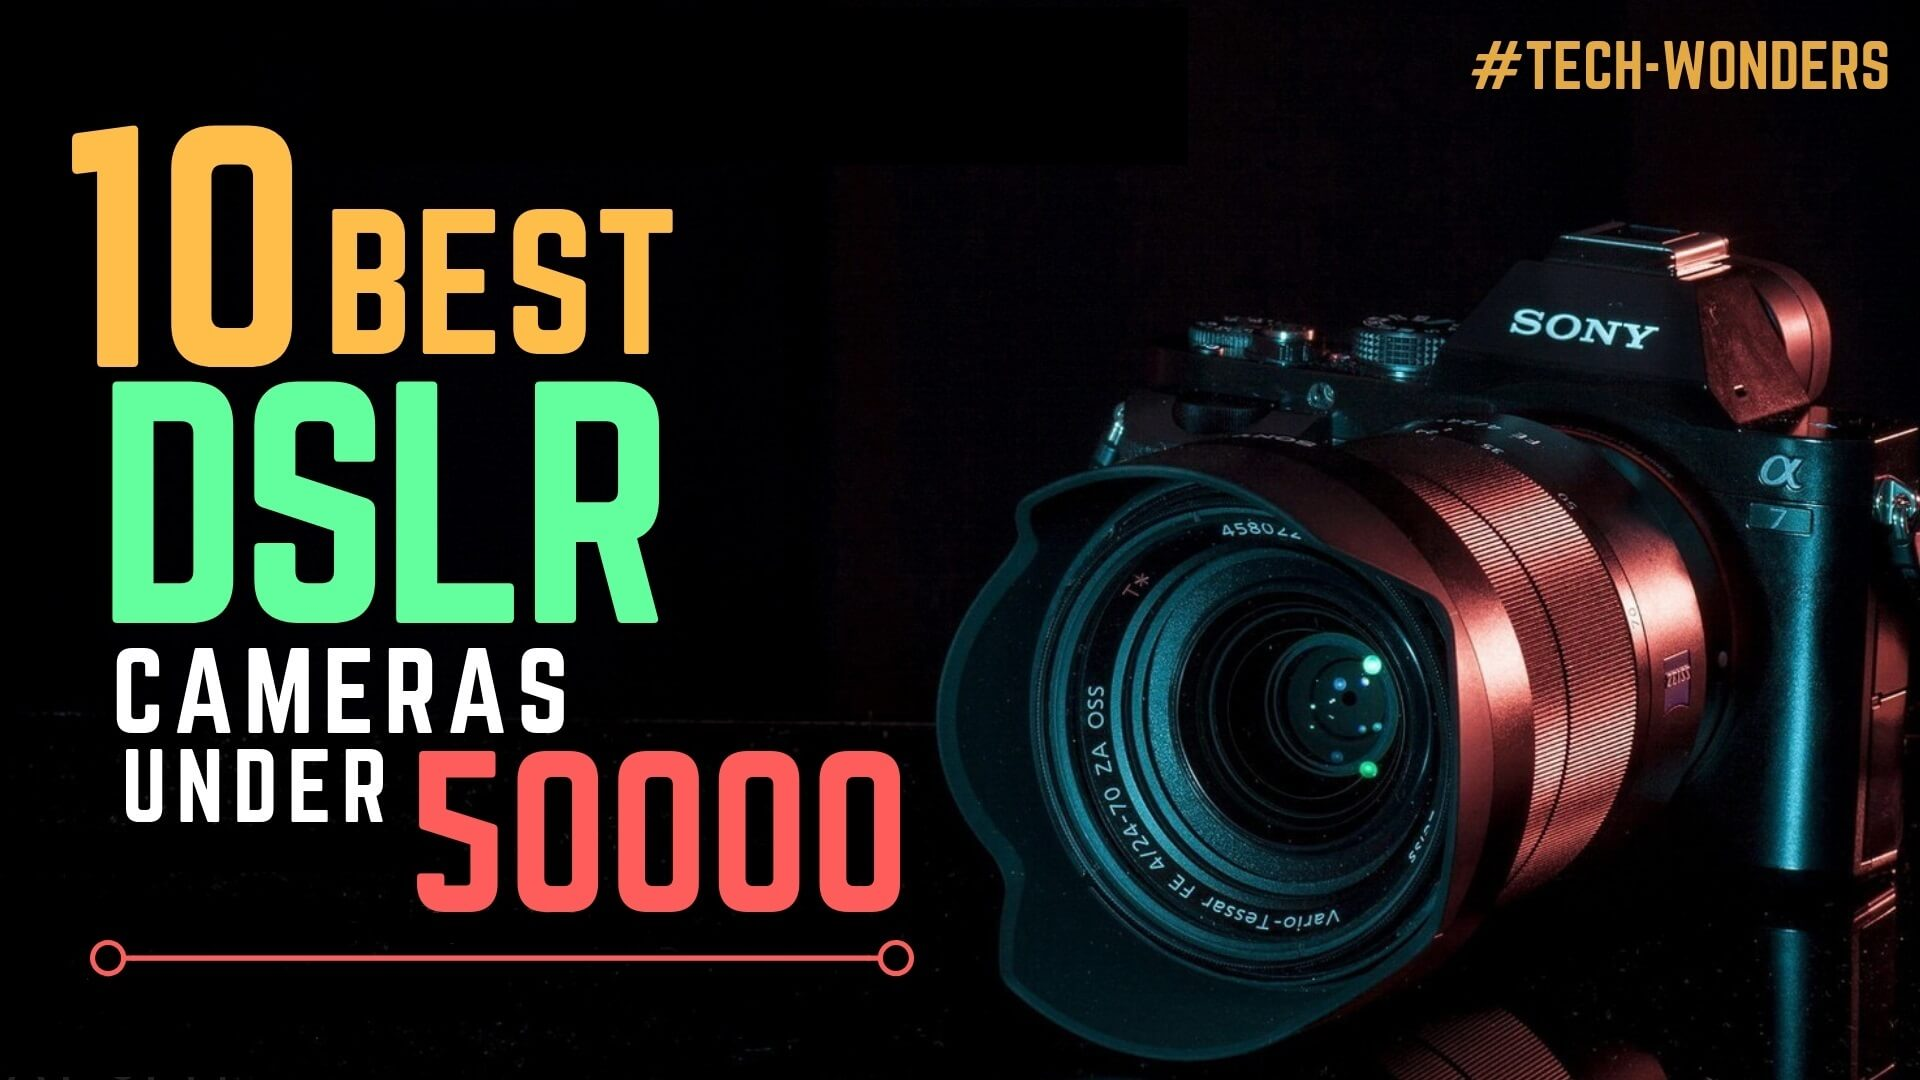 10 Best DSLR Cameras Under 50000 Rs in India